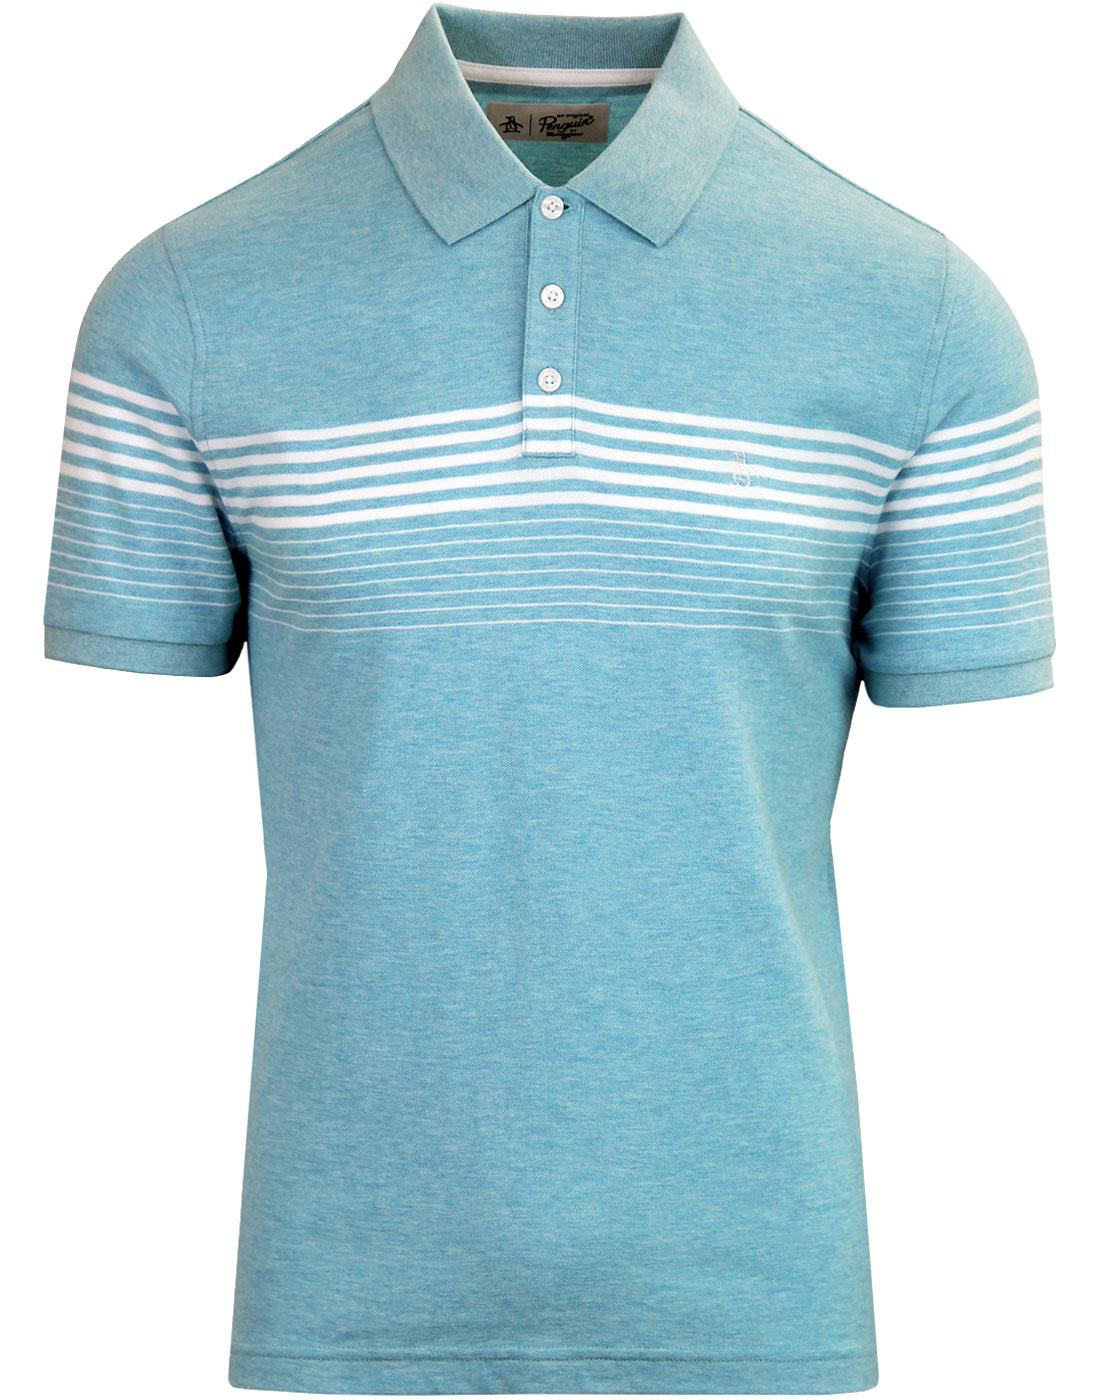 ORIGINAL PENGUIN 60's Engineered Stripe Pique Polo